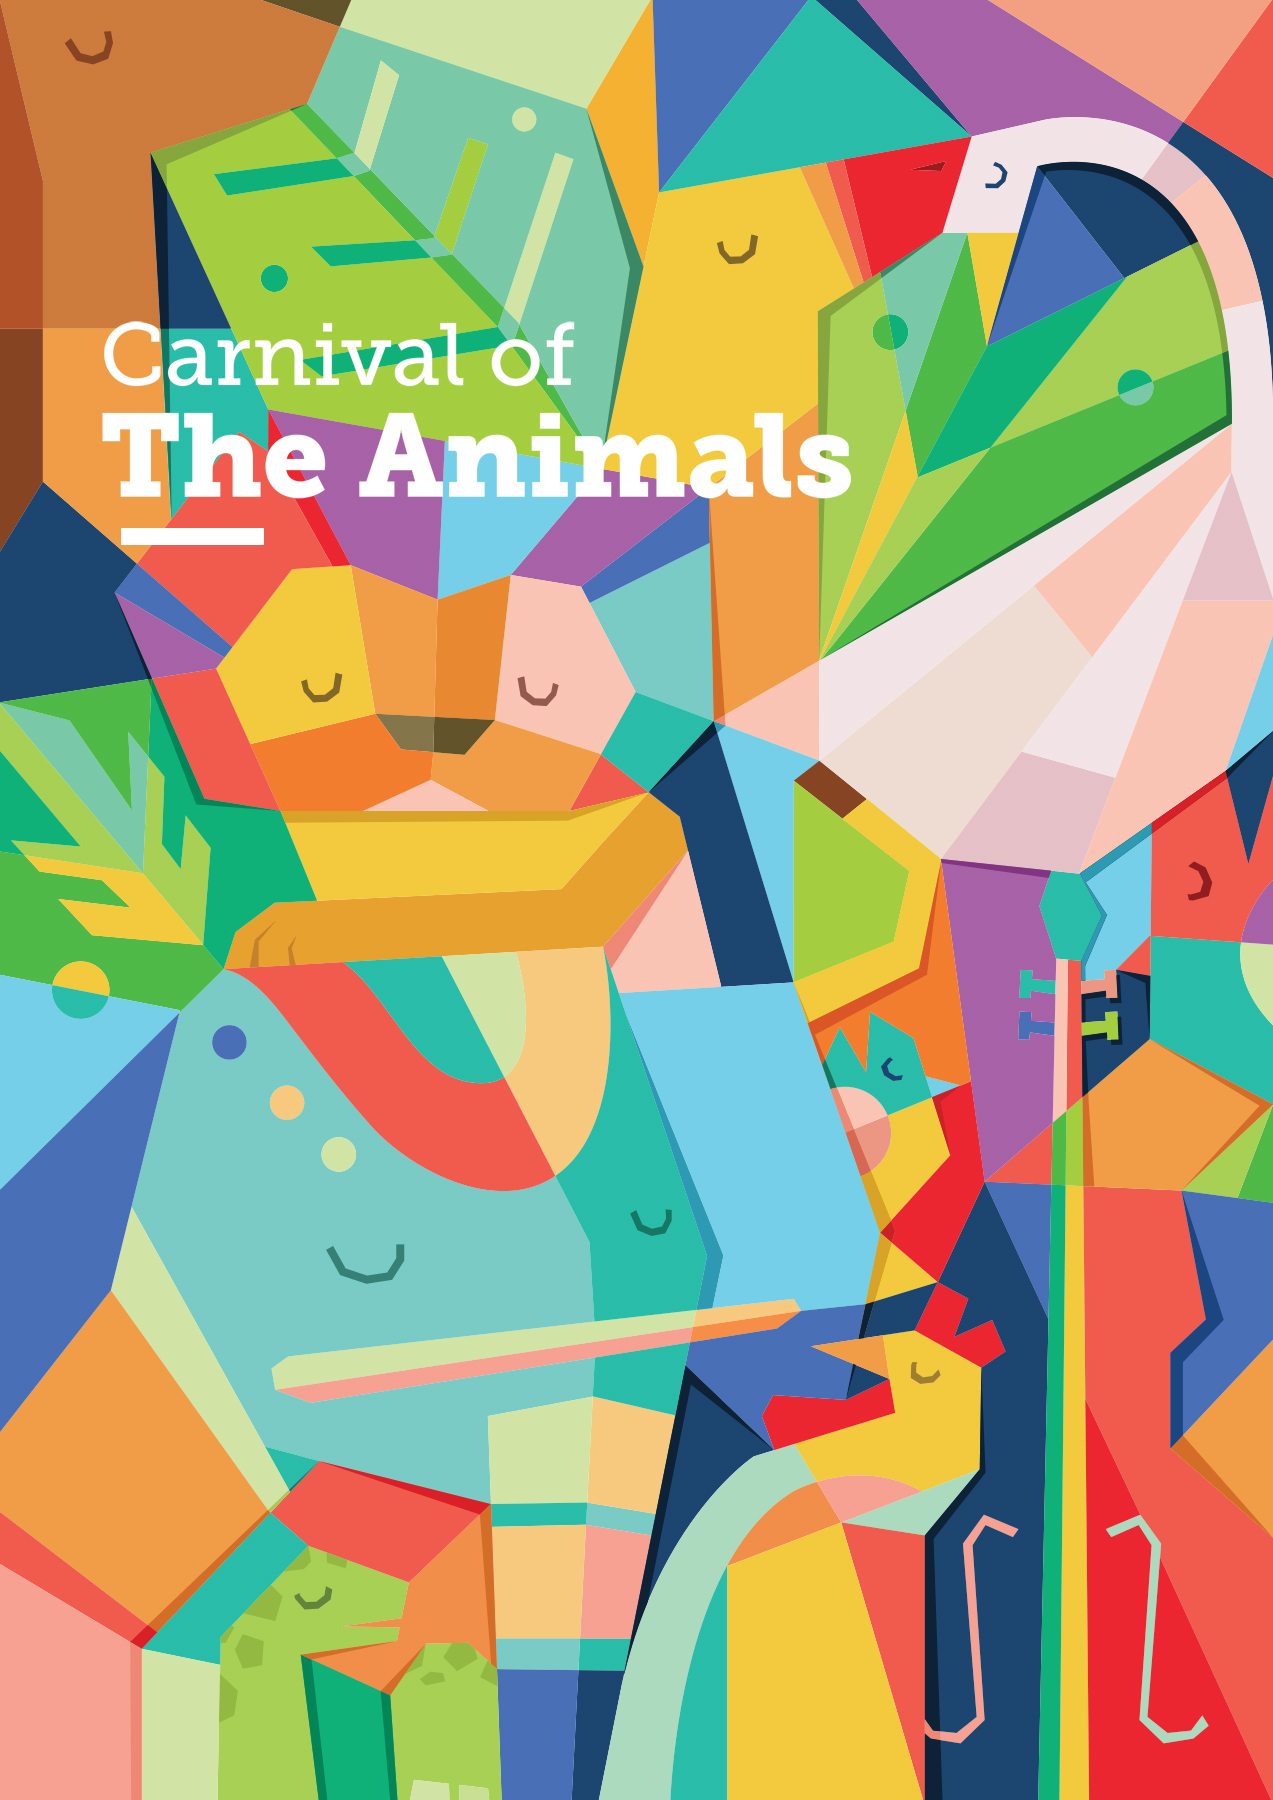 SSO Children for Concerts - Carnival of the Animals (c) Singapore Symphony Orchestra